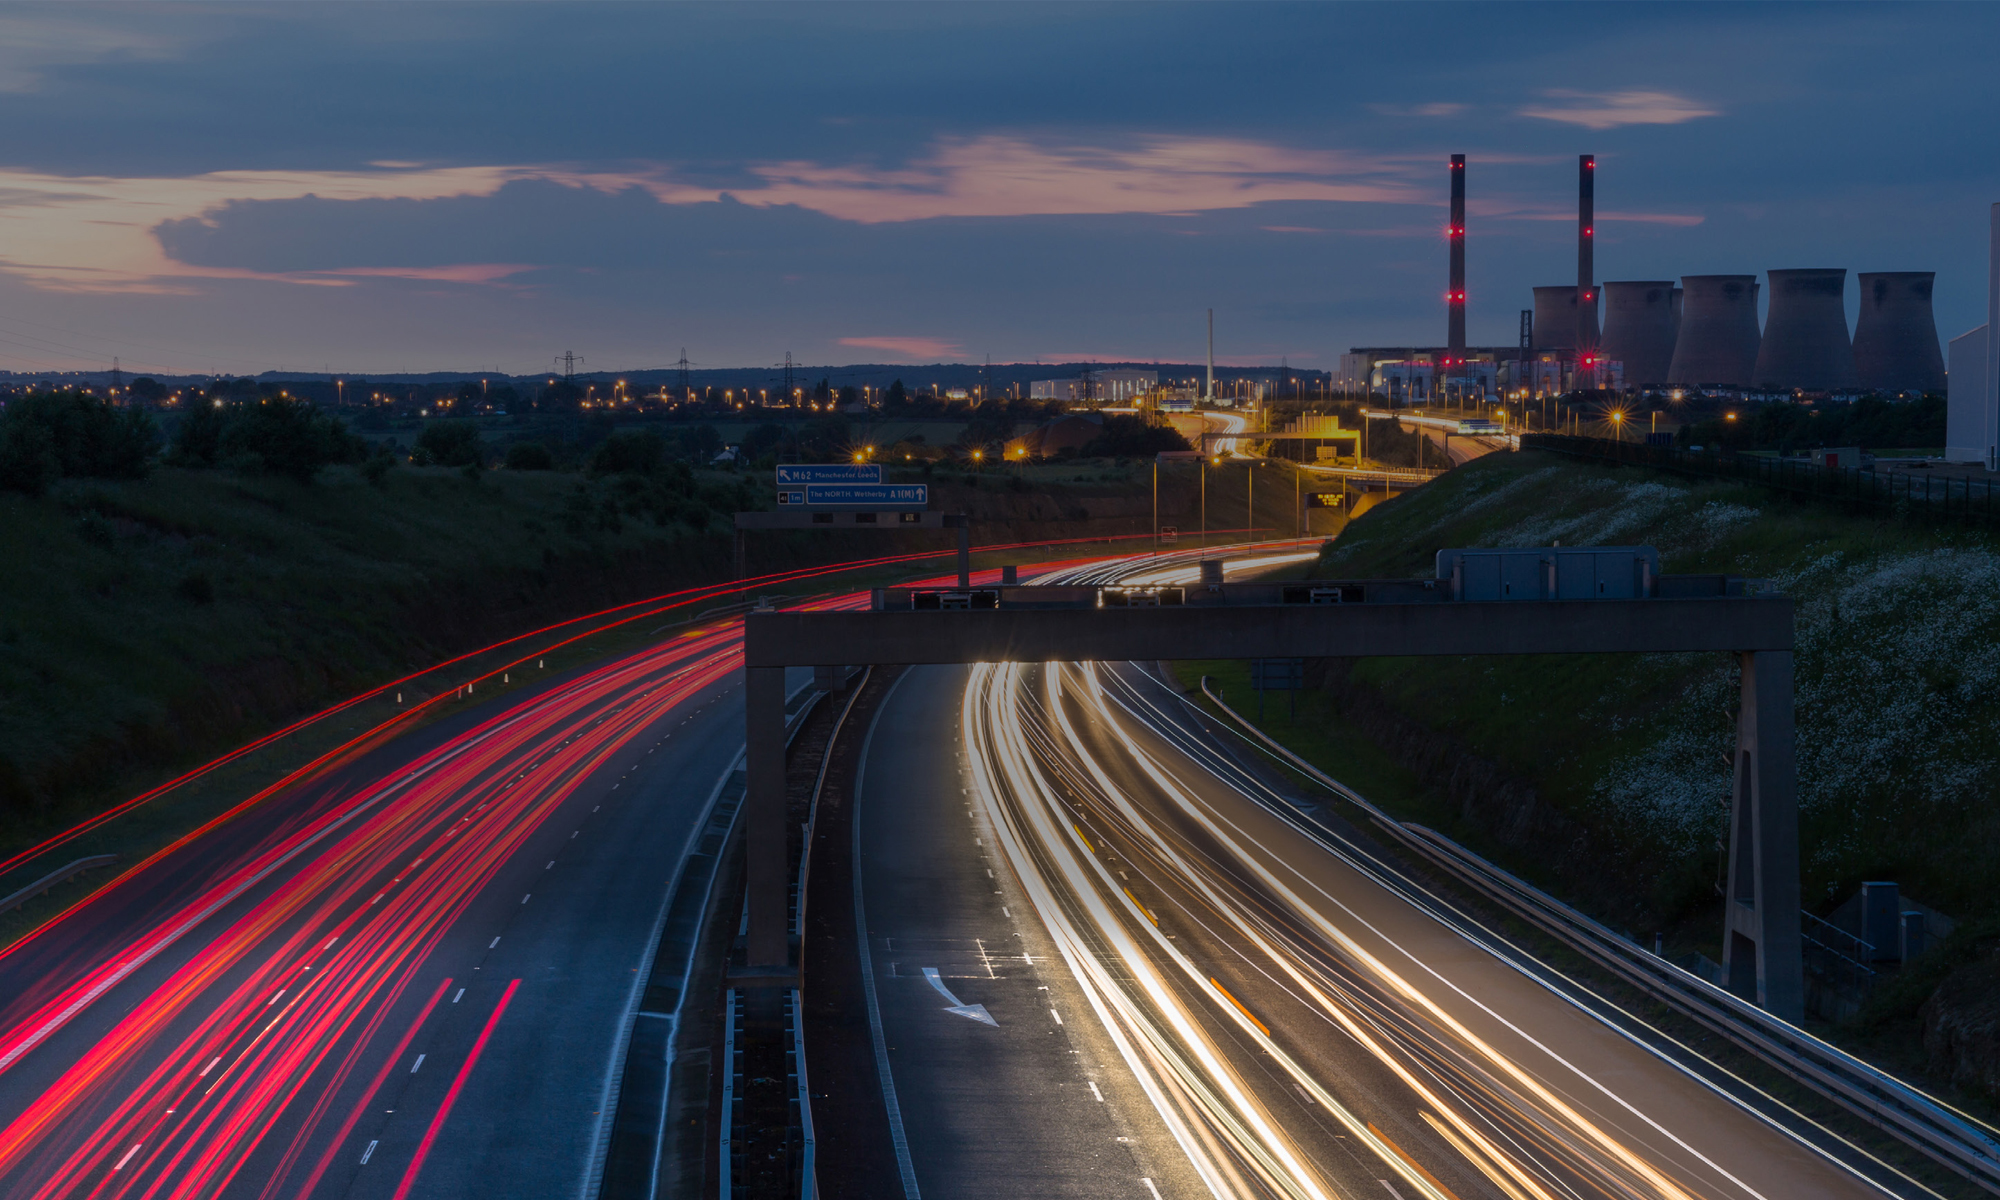 The A1(M) motorway near Ferrybridge Power Station at night